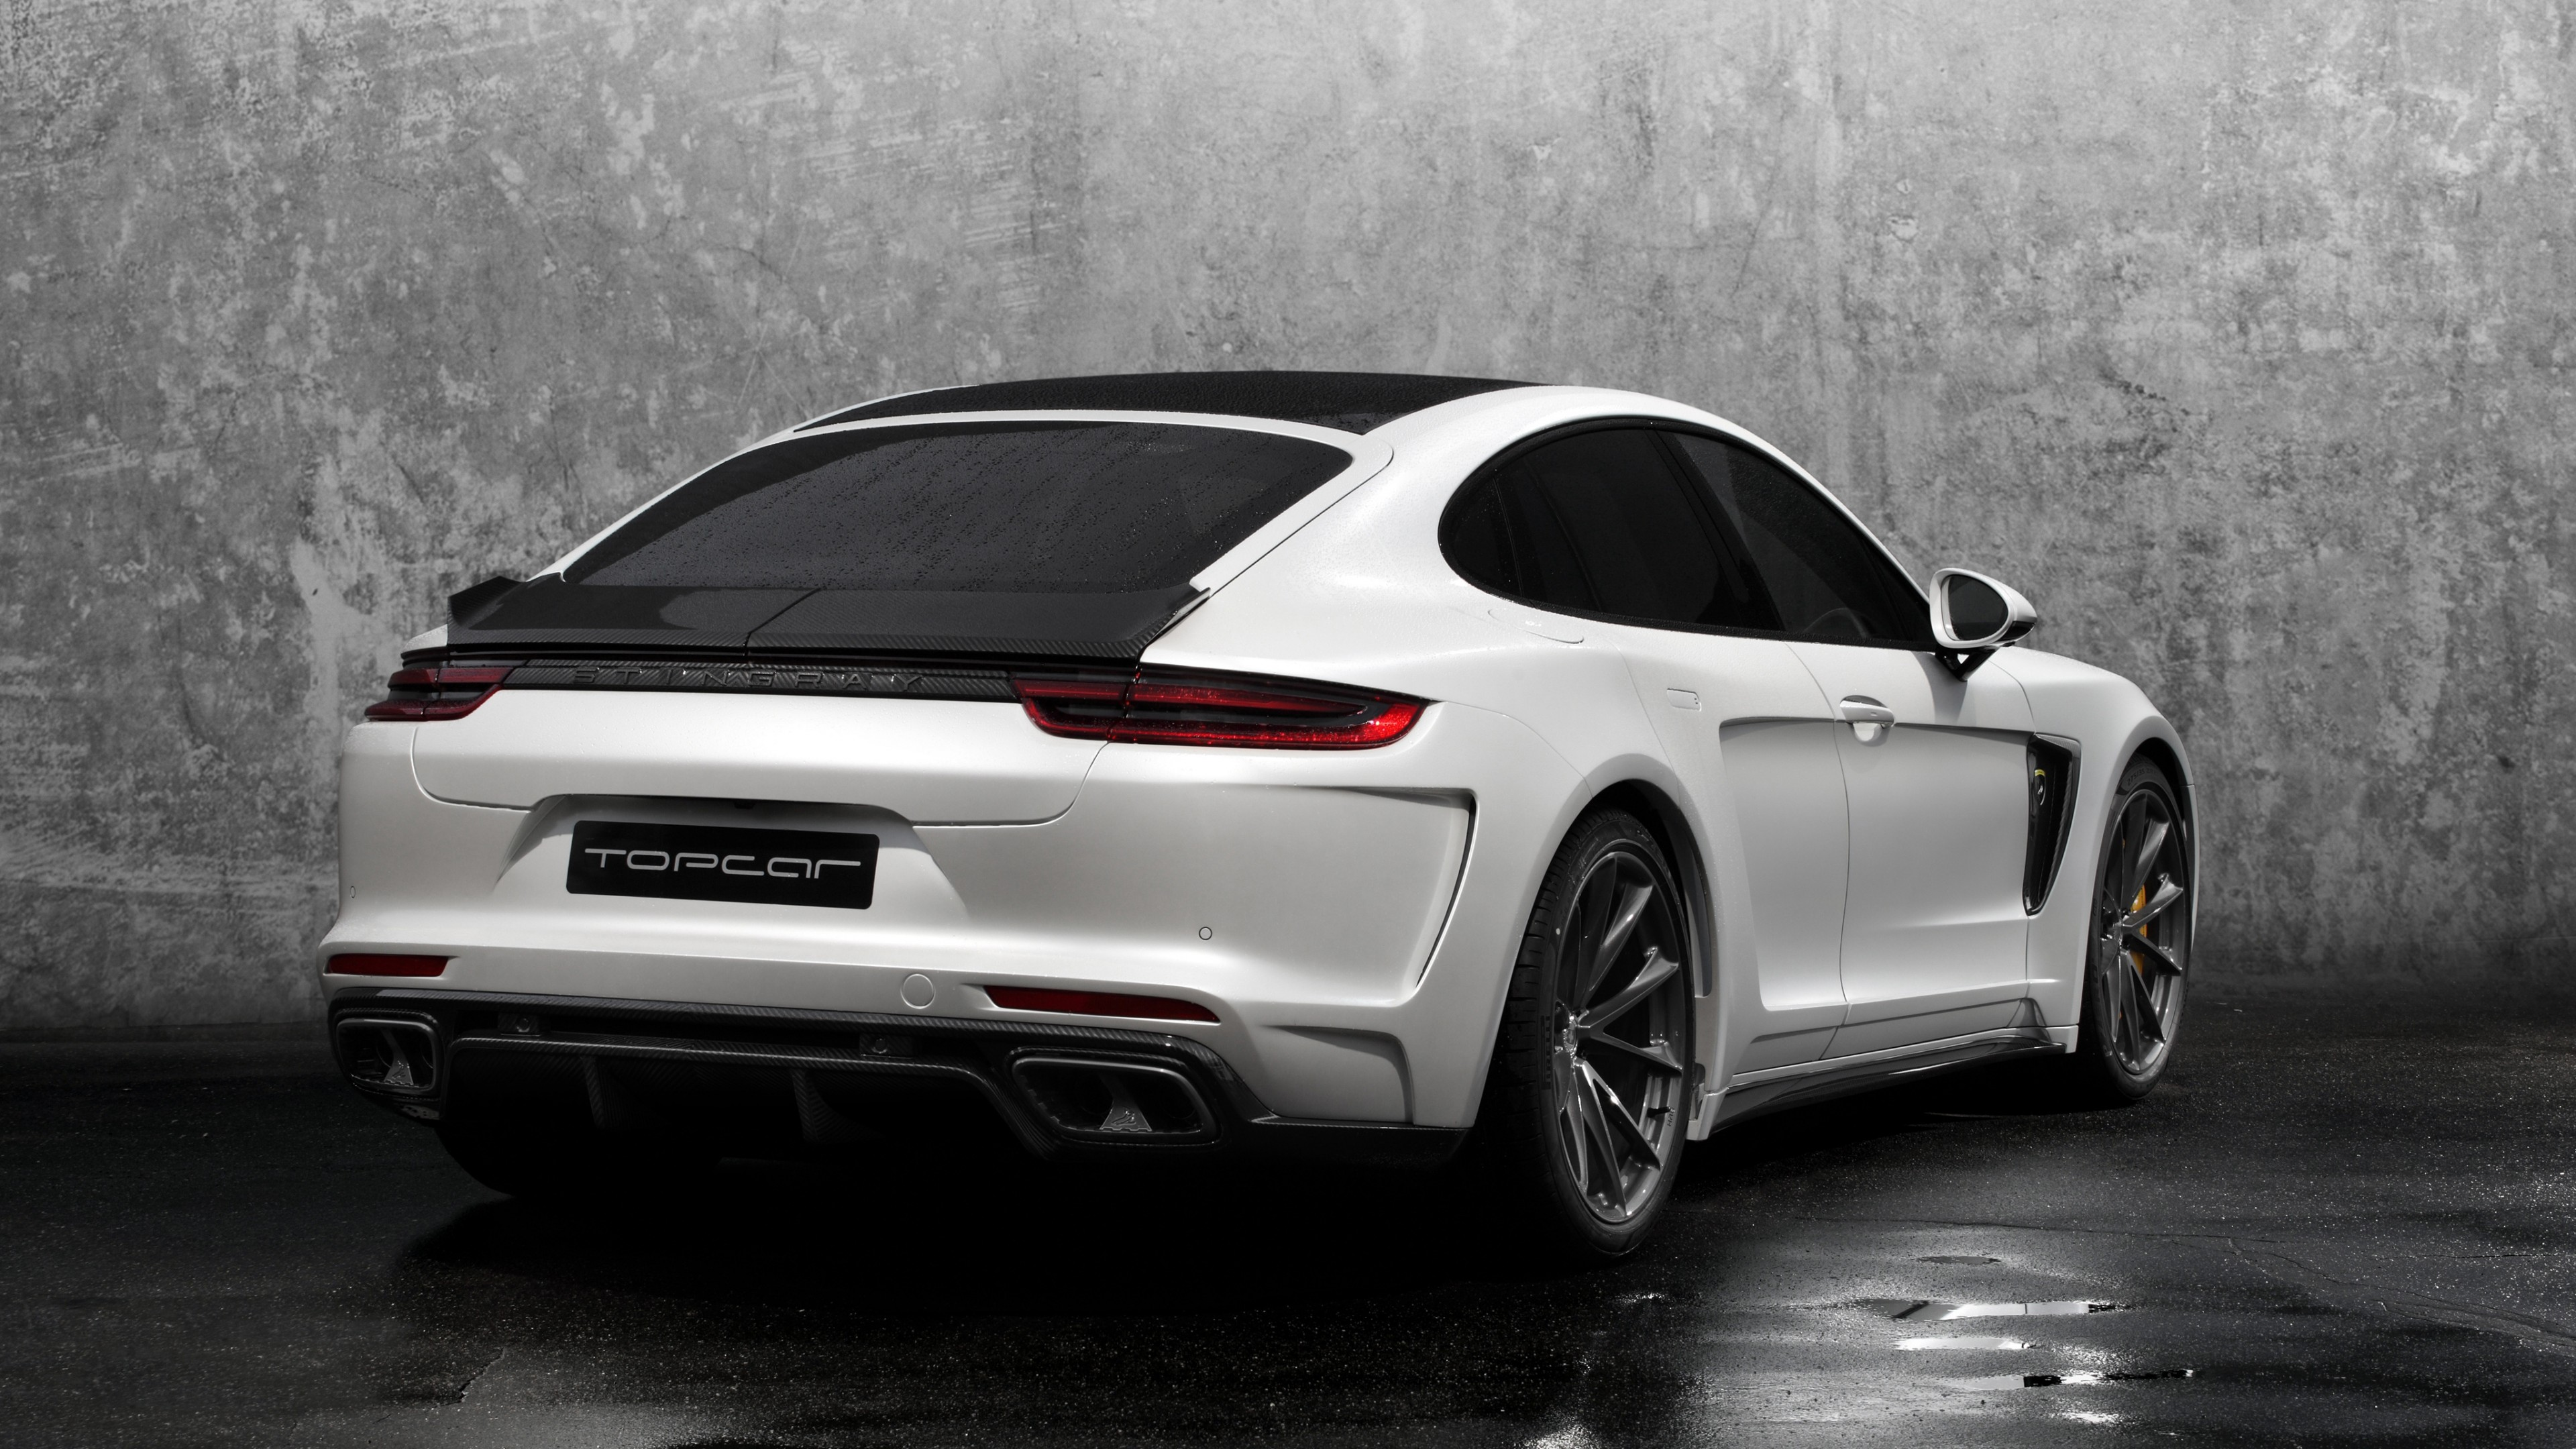 2017 TopCar Porsche Panamera Stingray GTR 2 Wallpaper | HD ...